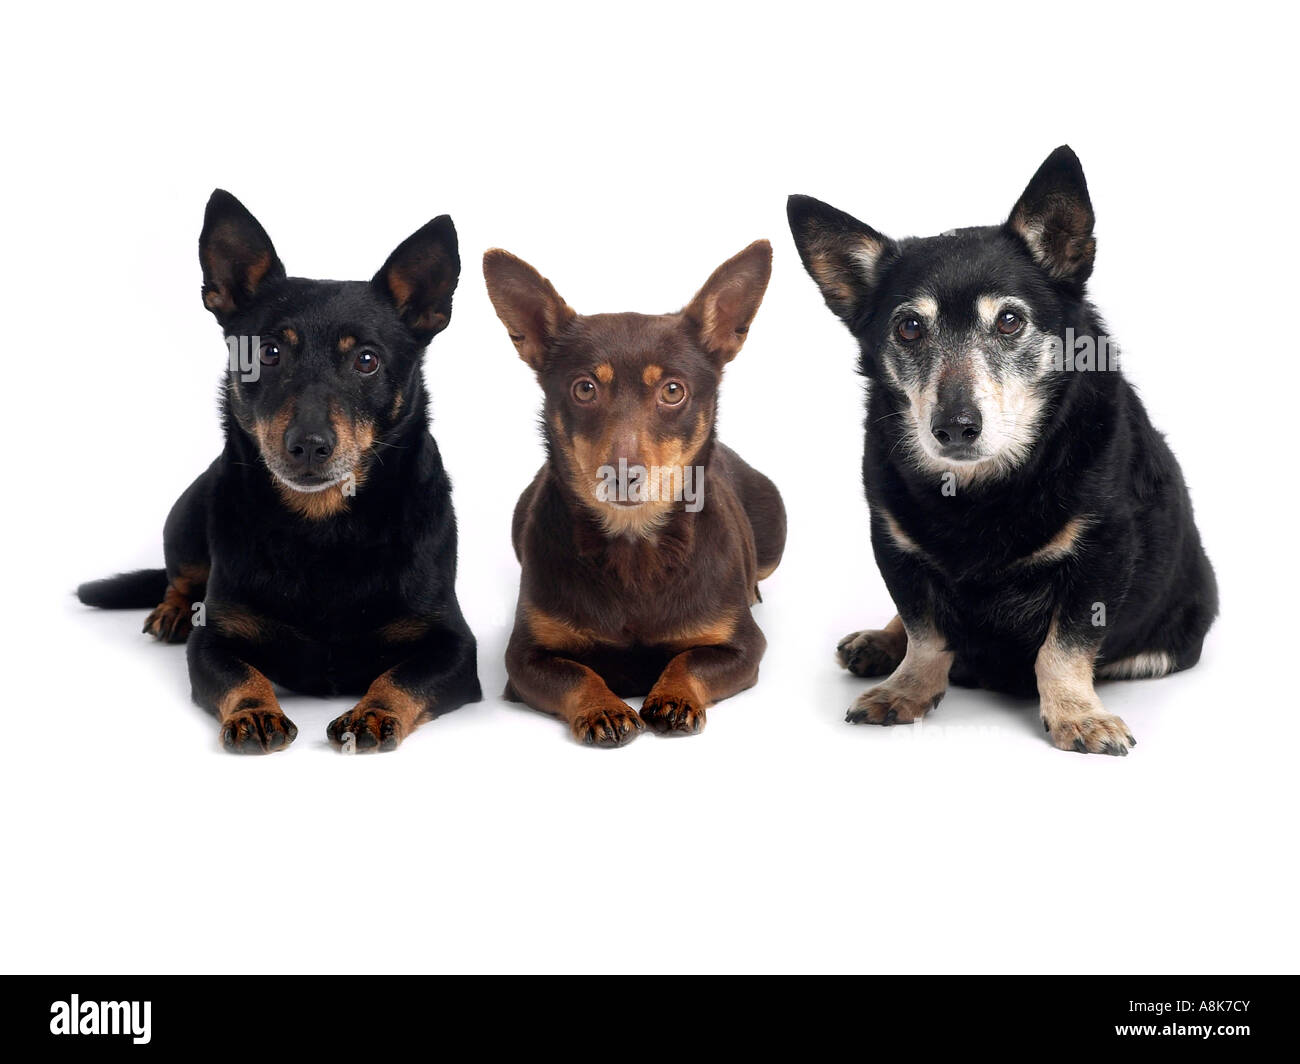 A family of lancashire heelers. - Stock Image